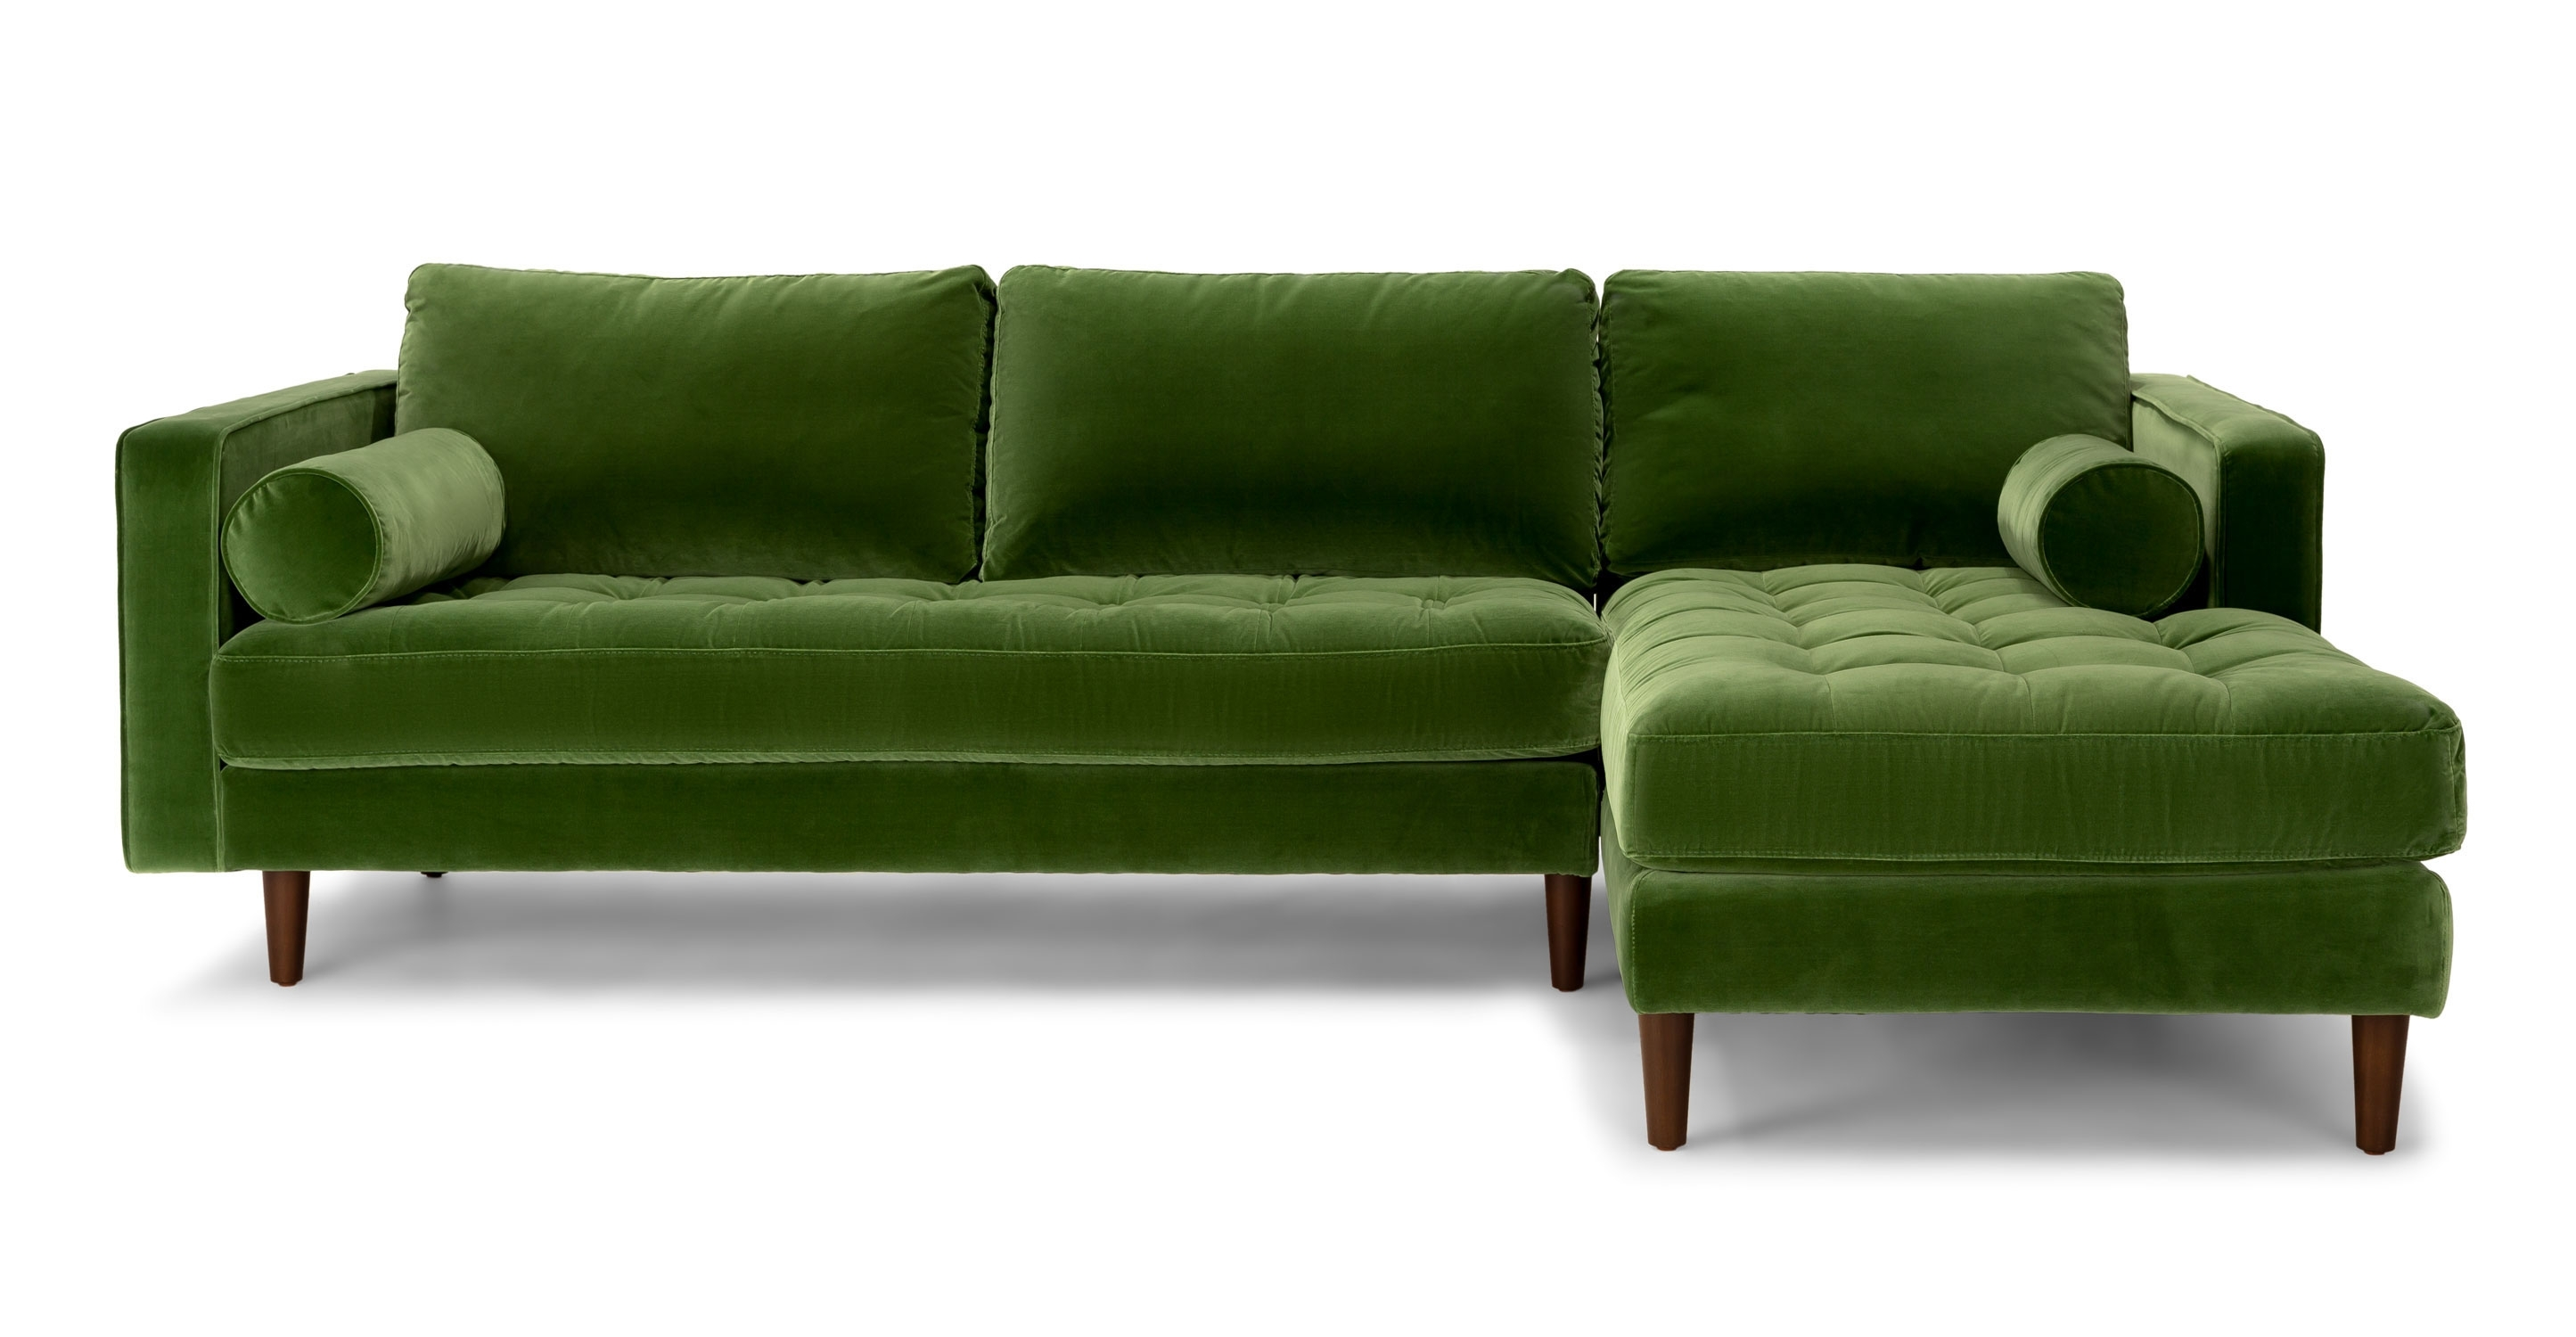 Excellent Sofa On Sale On Green Sectional Sofa Easy As Chesterfield With Regard To Green Sectional Sofas (Photo 3 of 10)